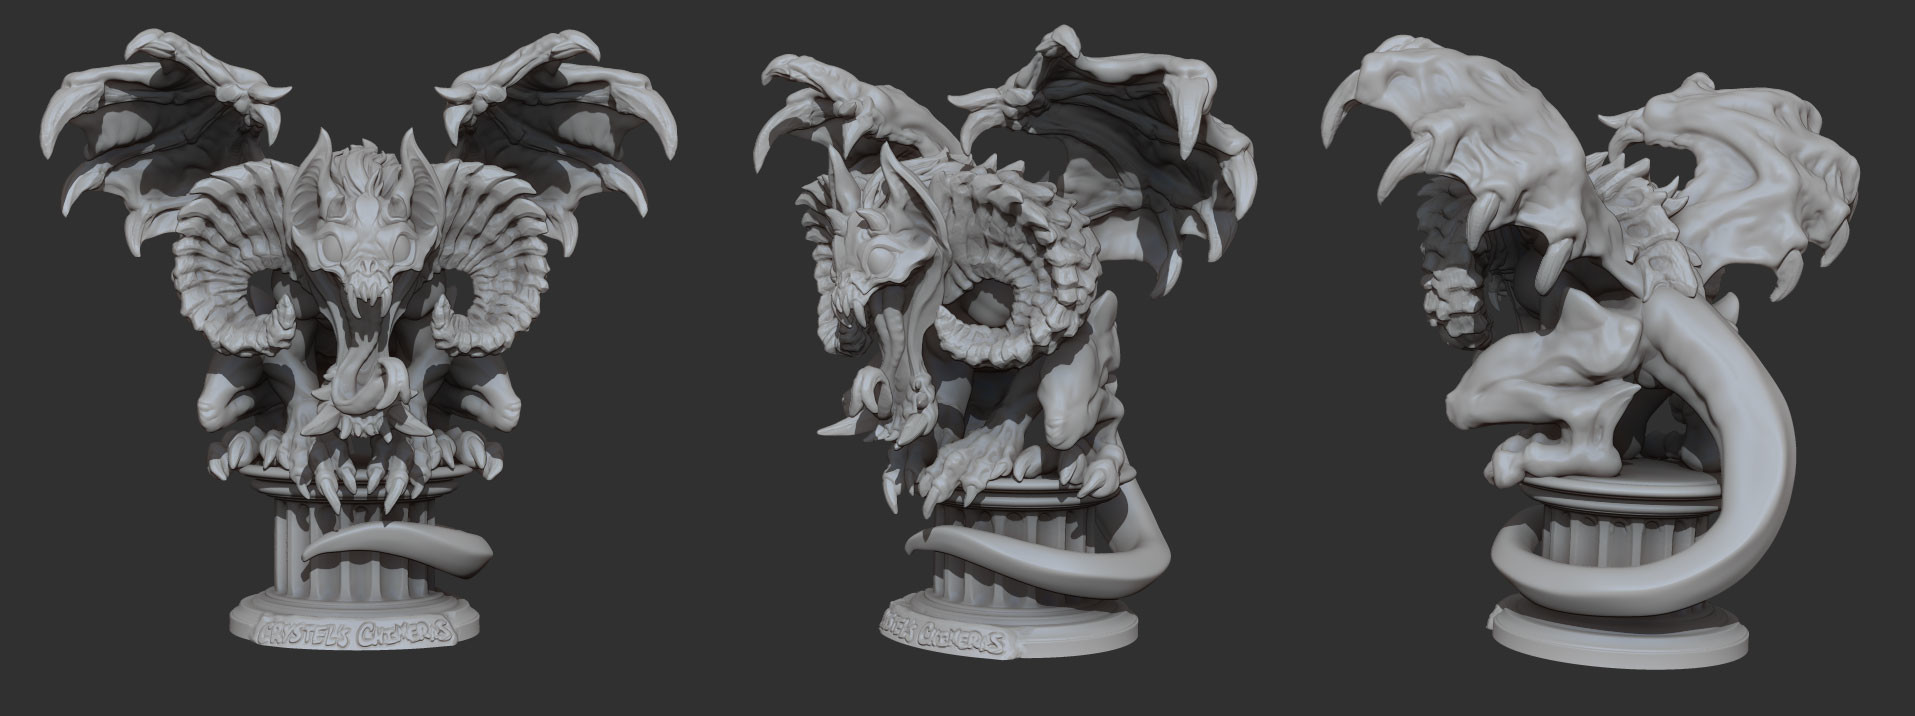 Crystel land gargsculpt